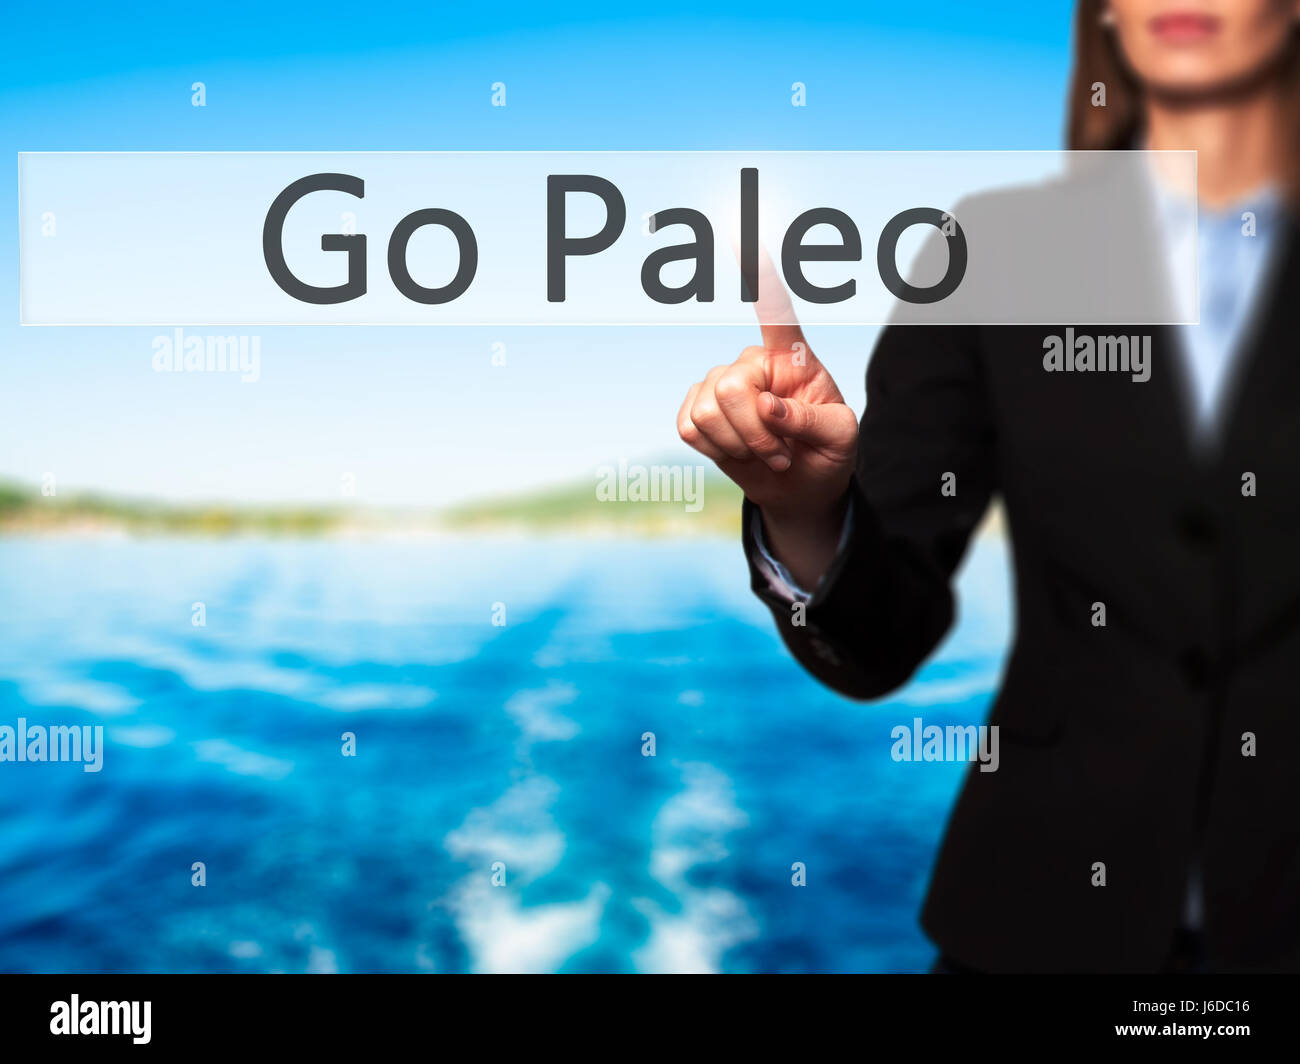 Go Paleo - Businesswoman hand pressing button on touch screen interface. Business, technology, internet concept. - Stock Image